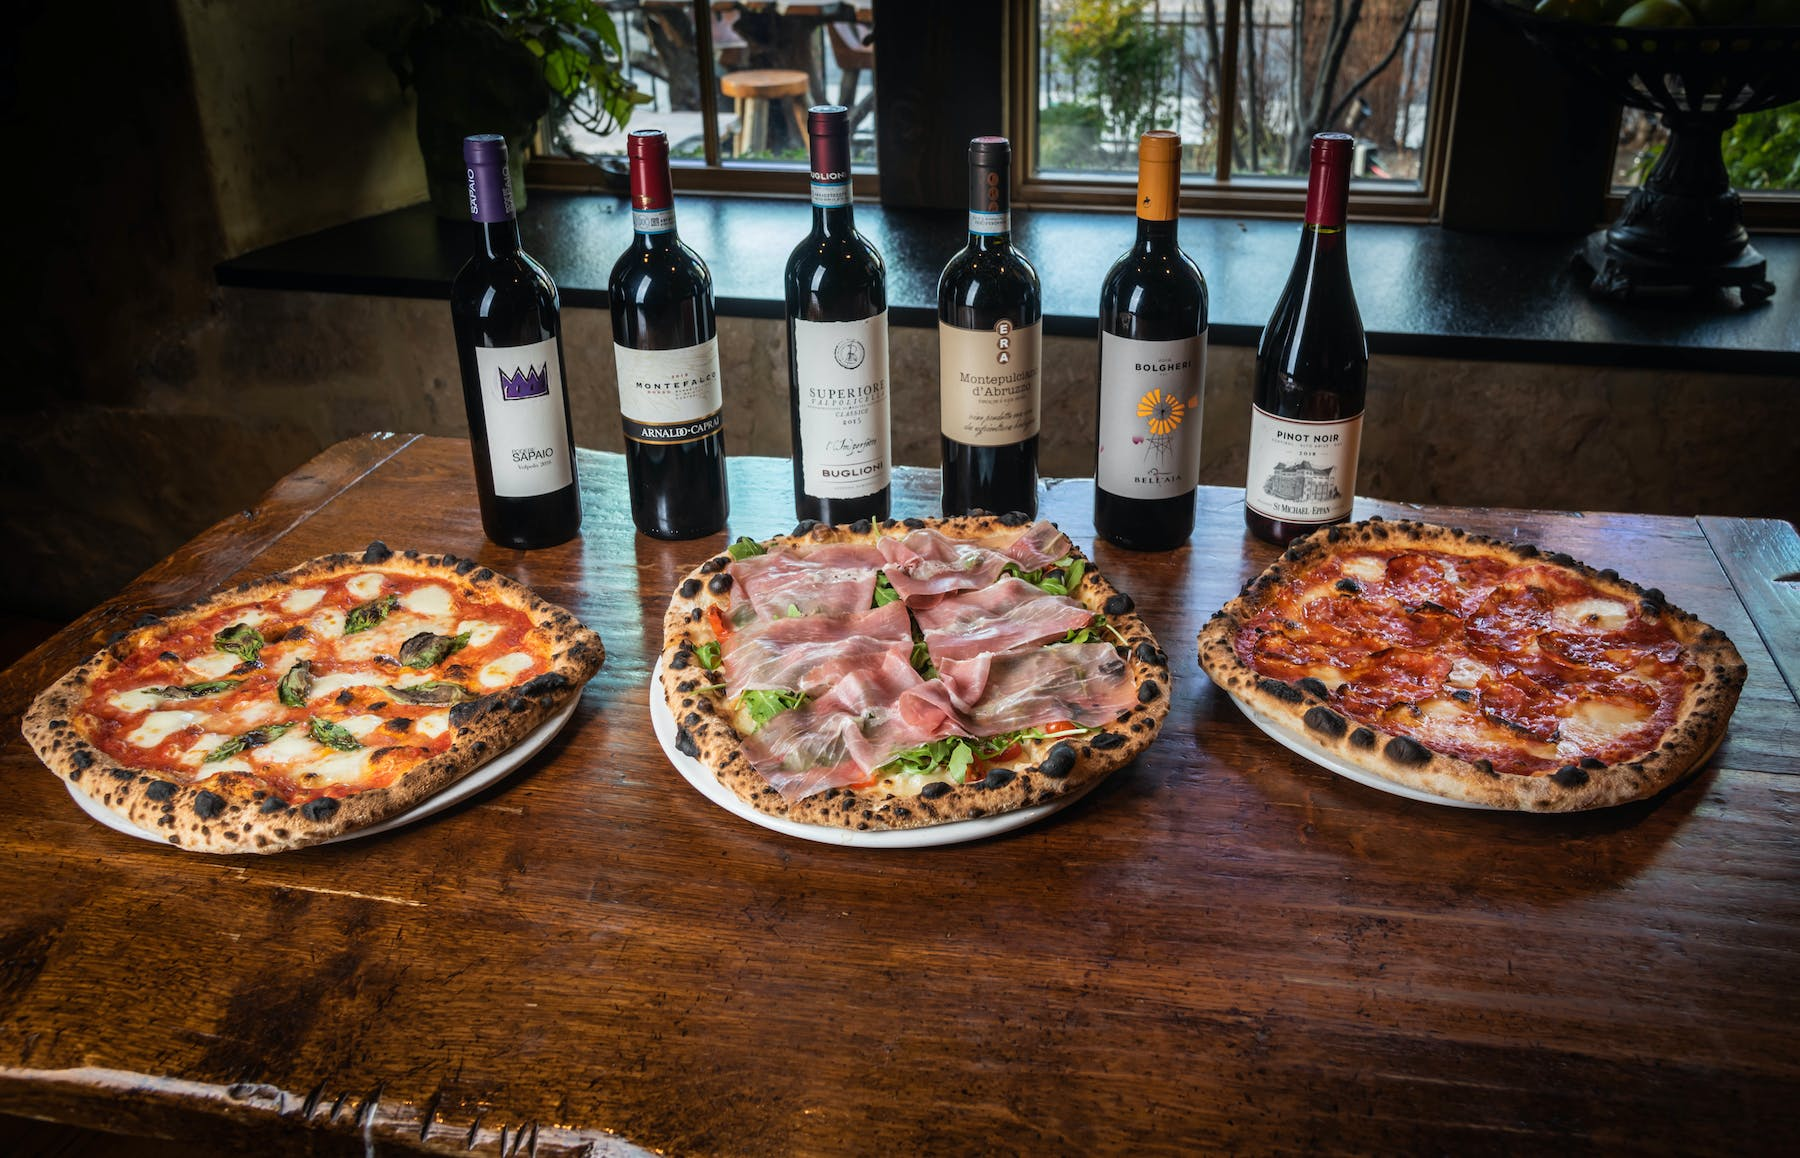 a pizza sitting on top of a table next to a bottle of wine